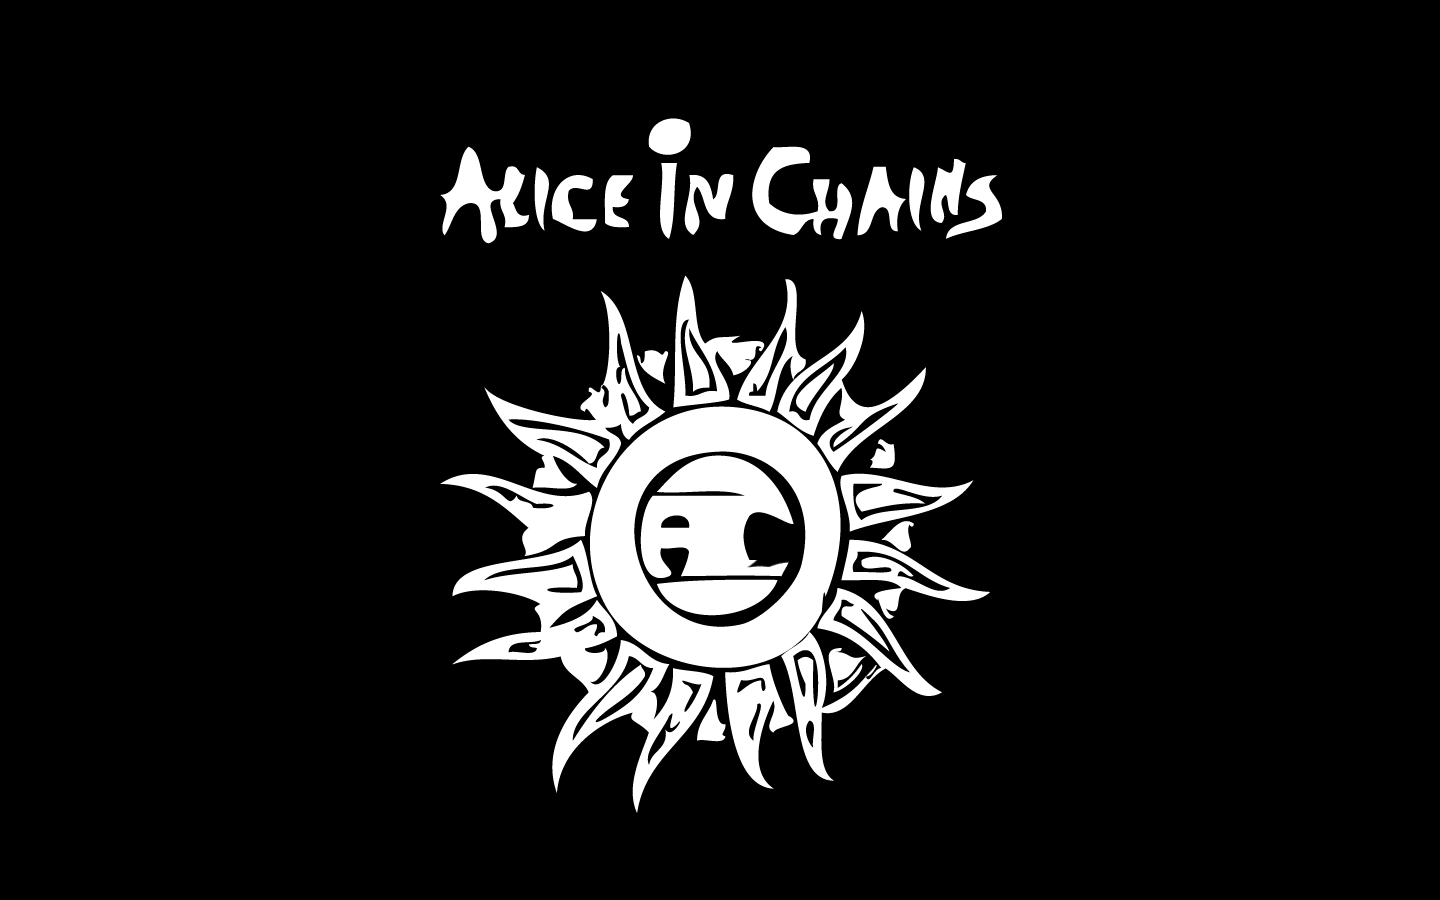 Alice In Chains Wallpapers - Wallpaper Cave - Alice In Chains Vector PNG